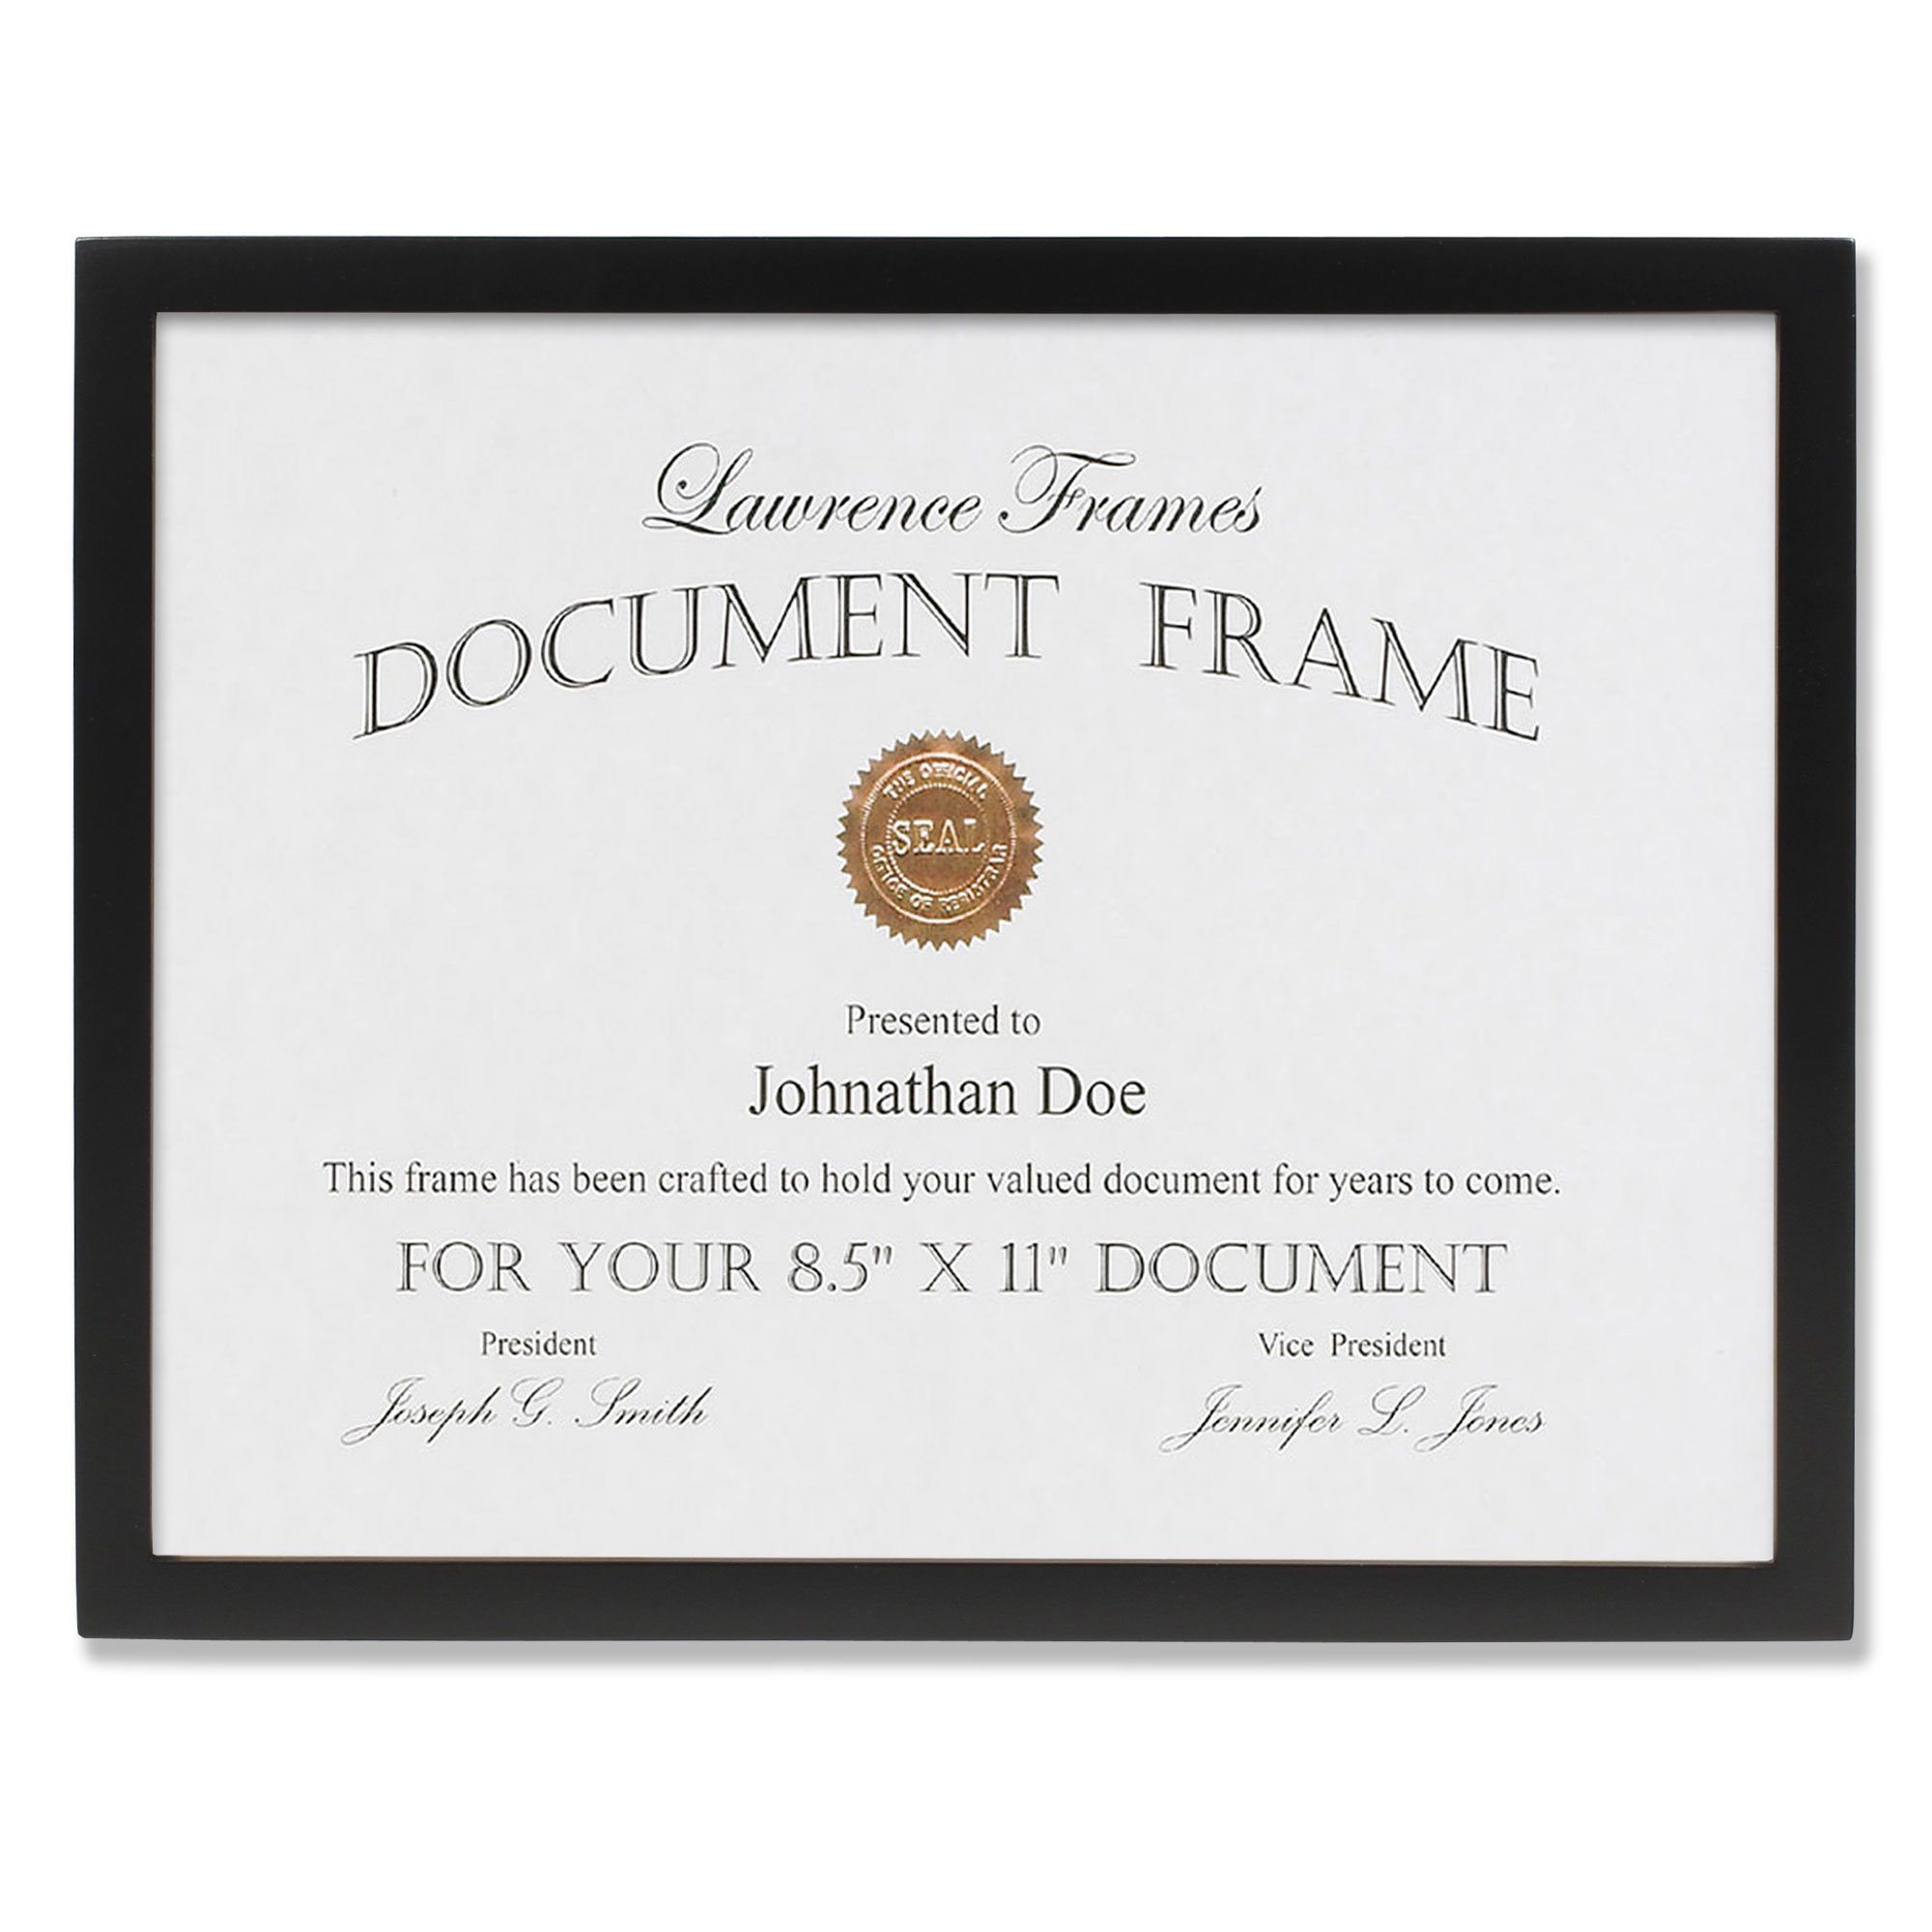 Lawrence Frames Black Wood Certificate Picture Frame, Gallery Collection, 8-1/2 by 11-Inch by Lawrence Frames